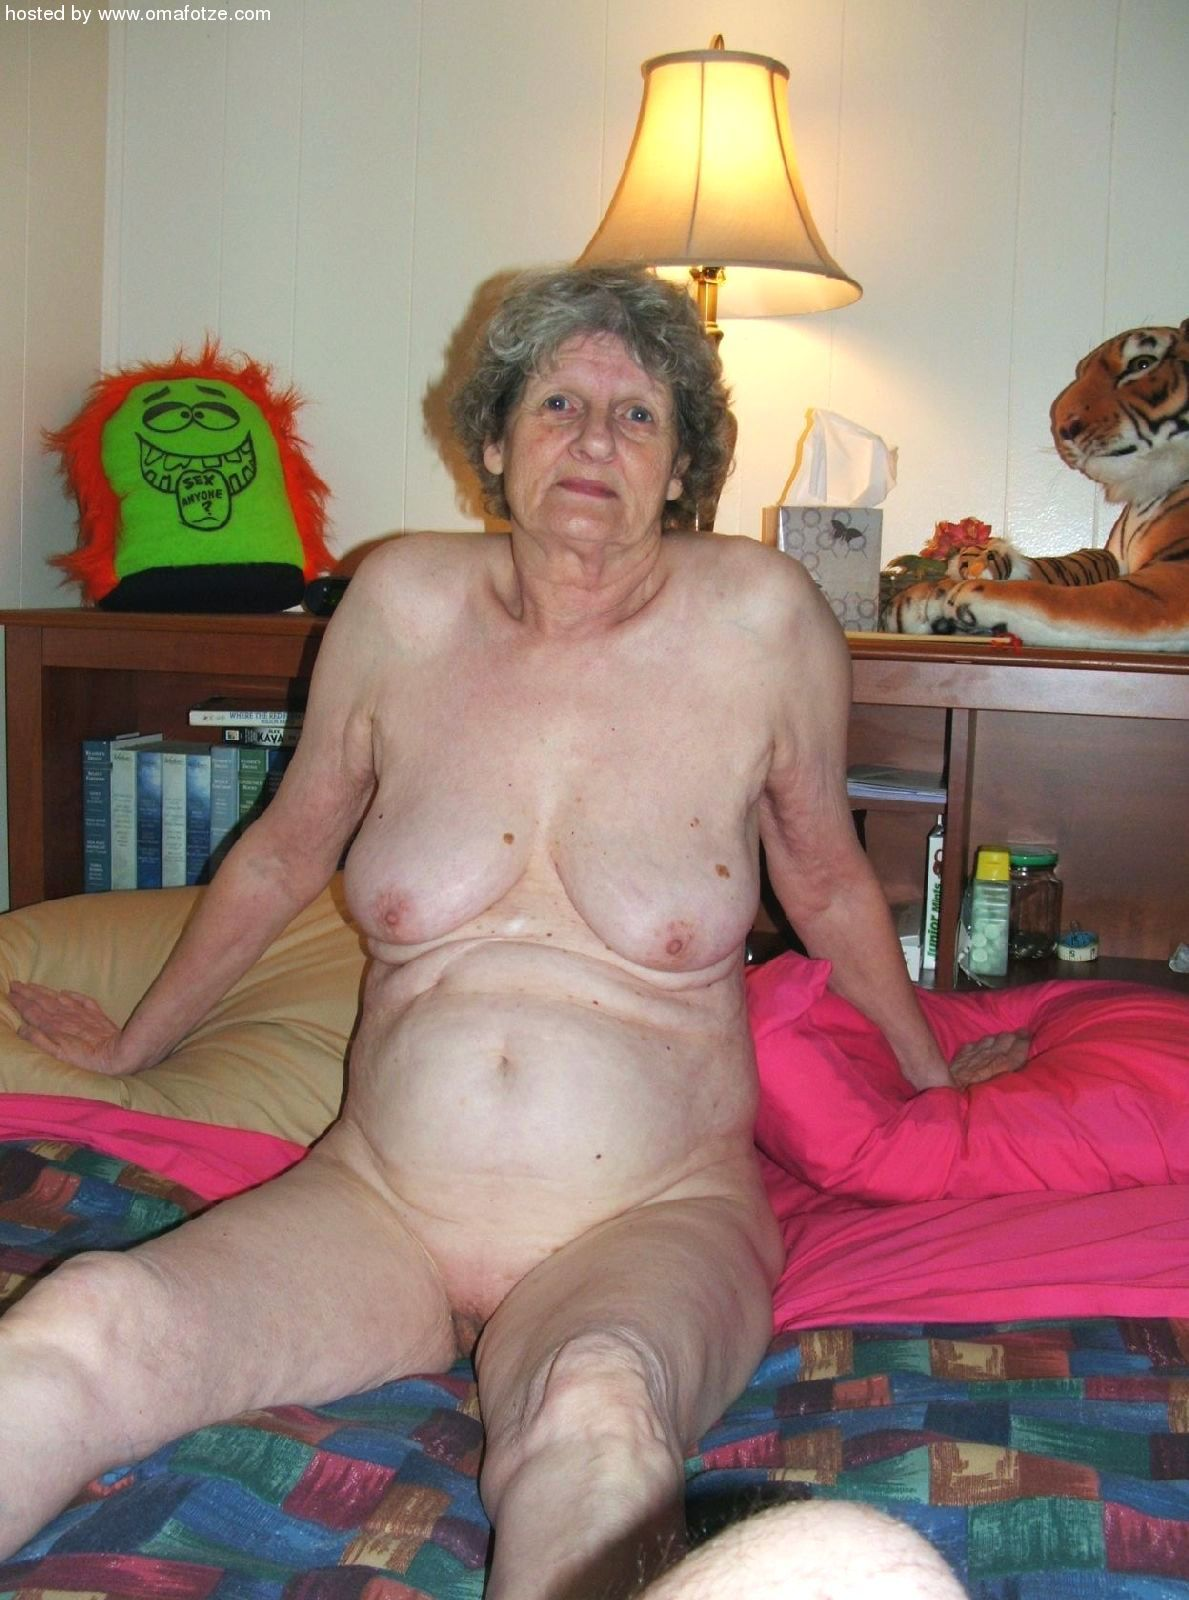 Hot Granny Porn Pictures And Vids - Free Granny And Mature -3724